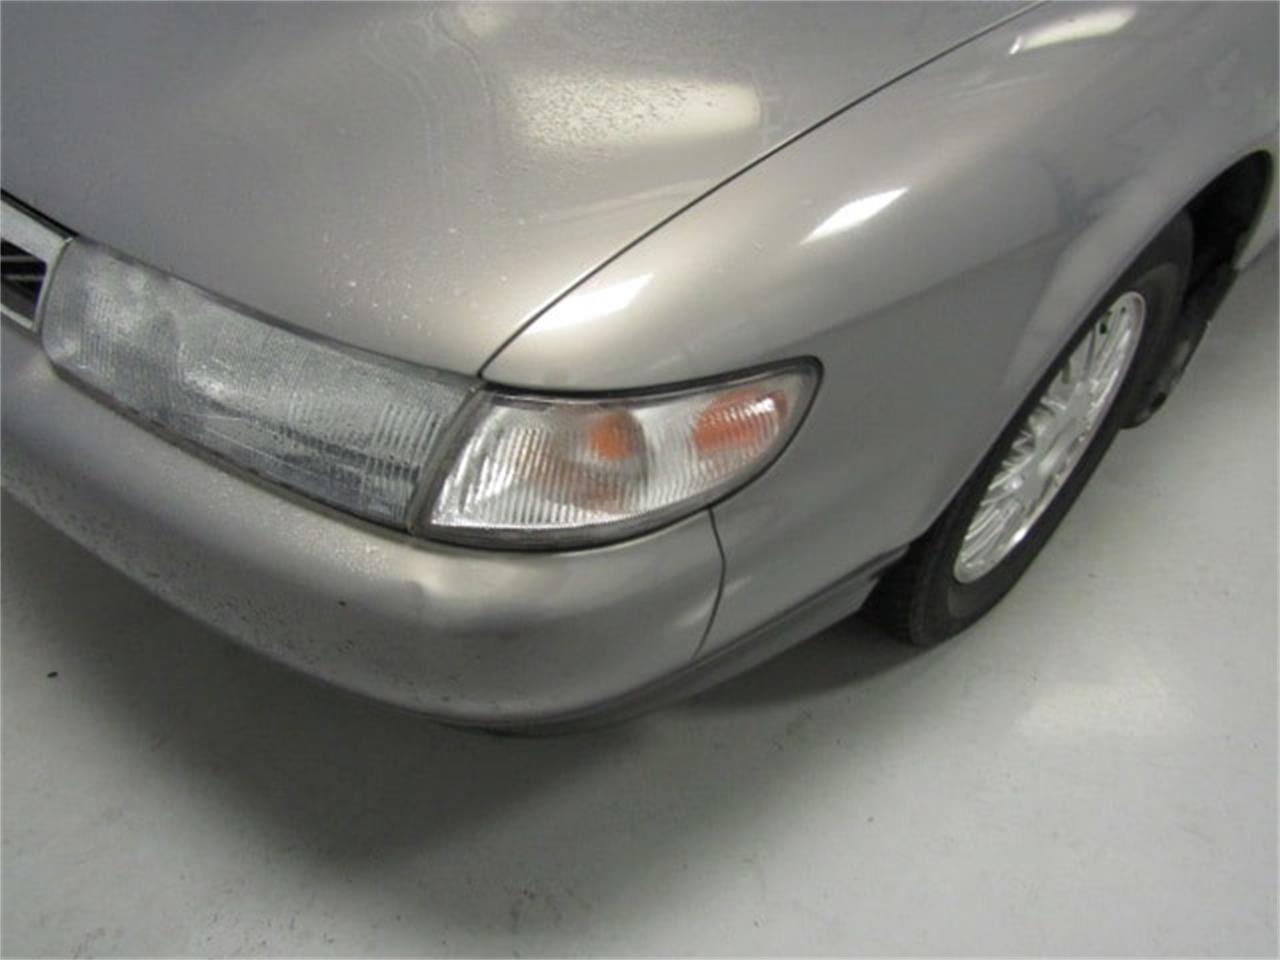 Large Picture of 1992 Eunos Cosmo located in Christiansburg Virginia - $16,900.00 - LVD1